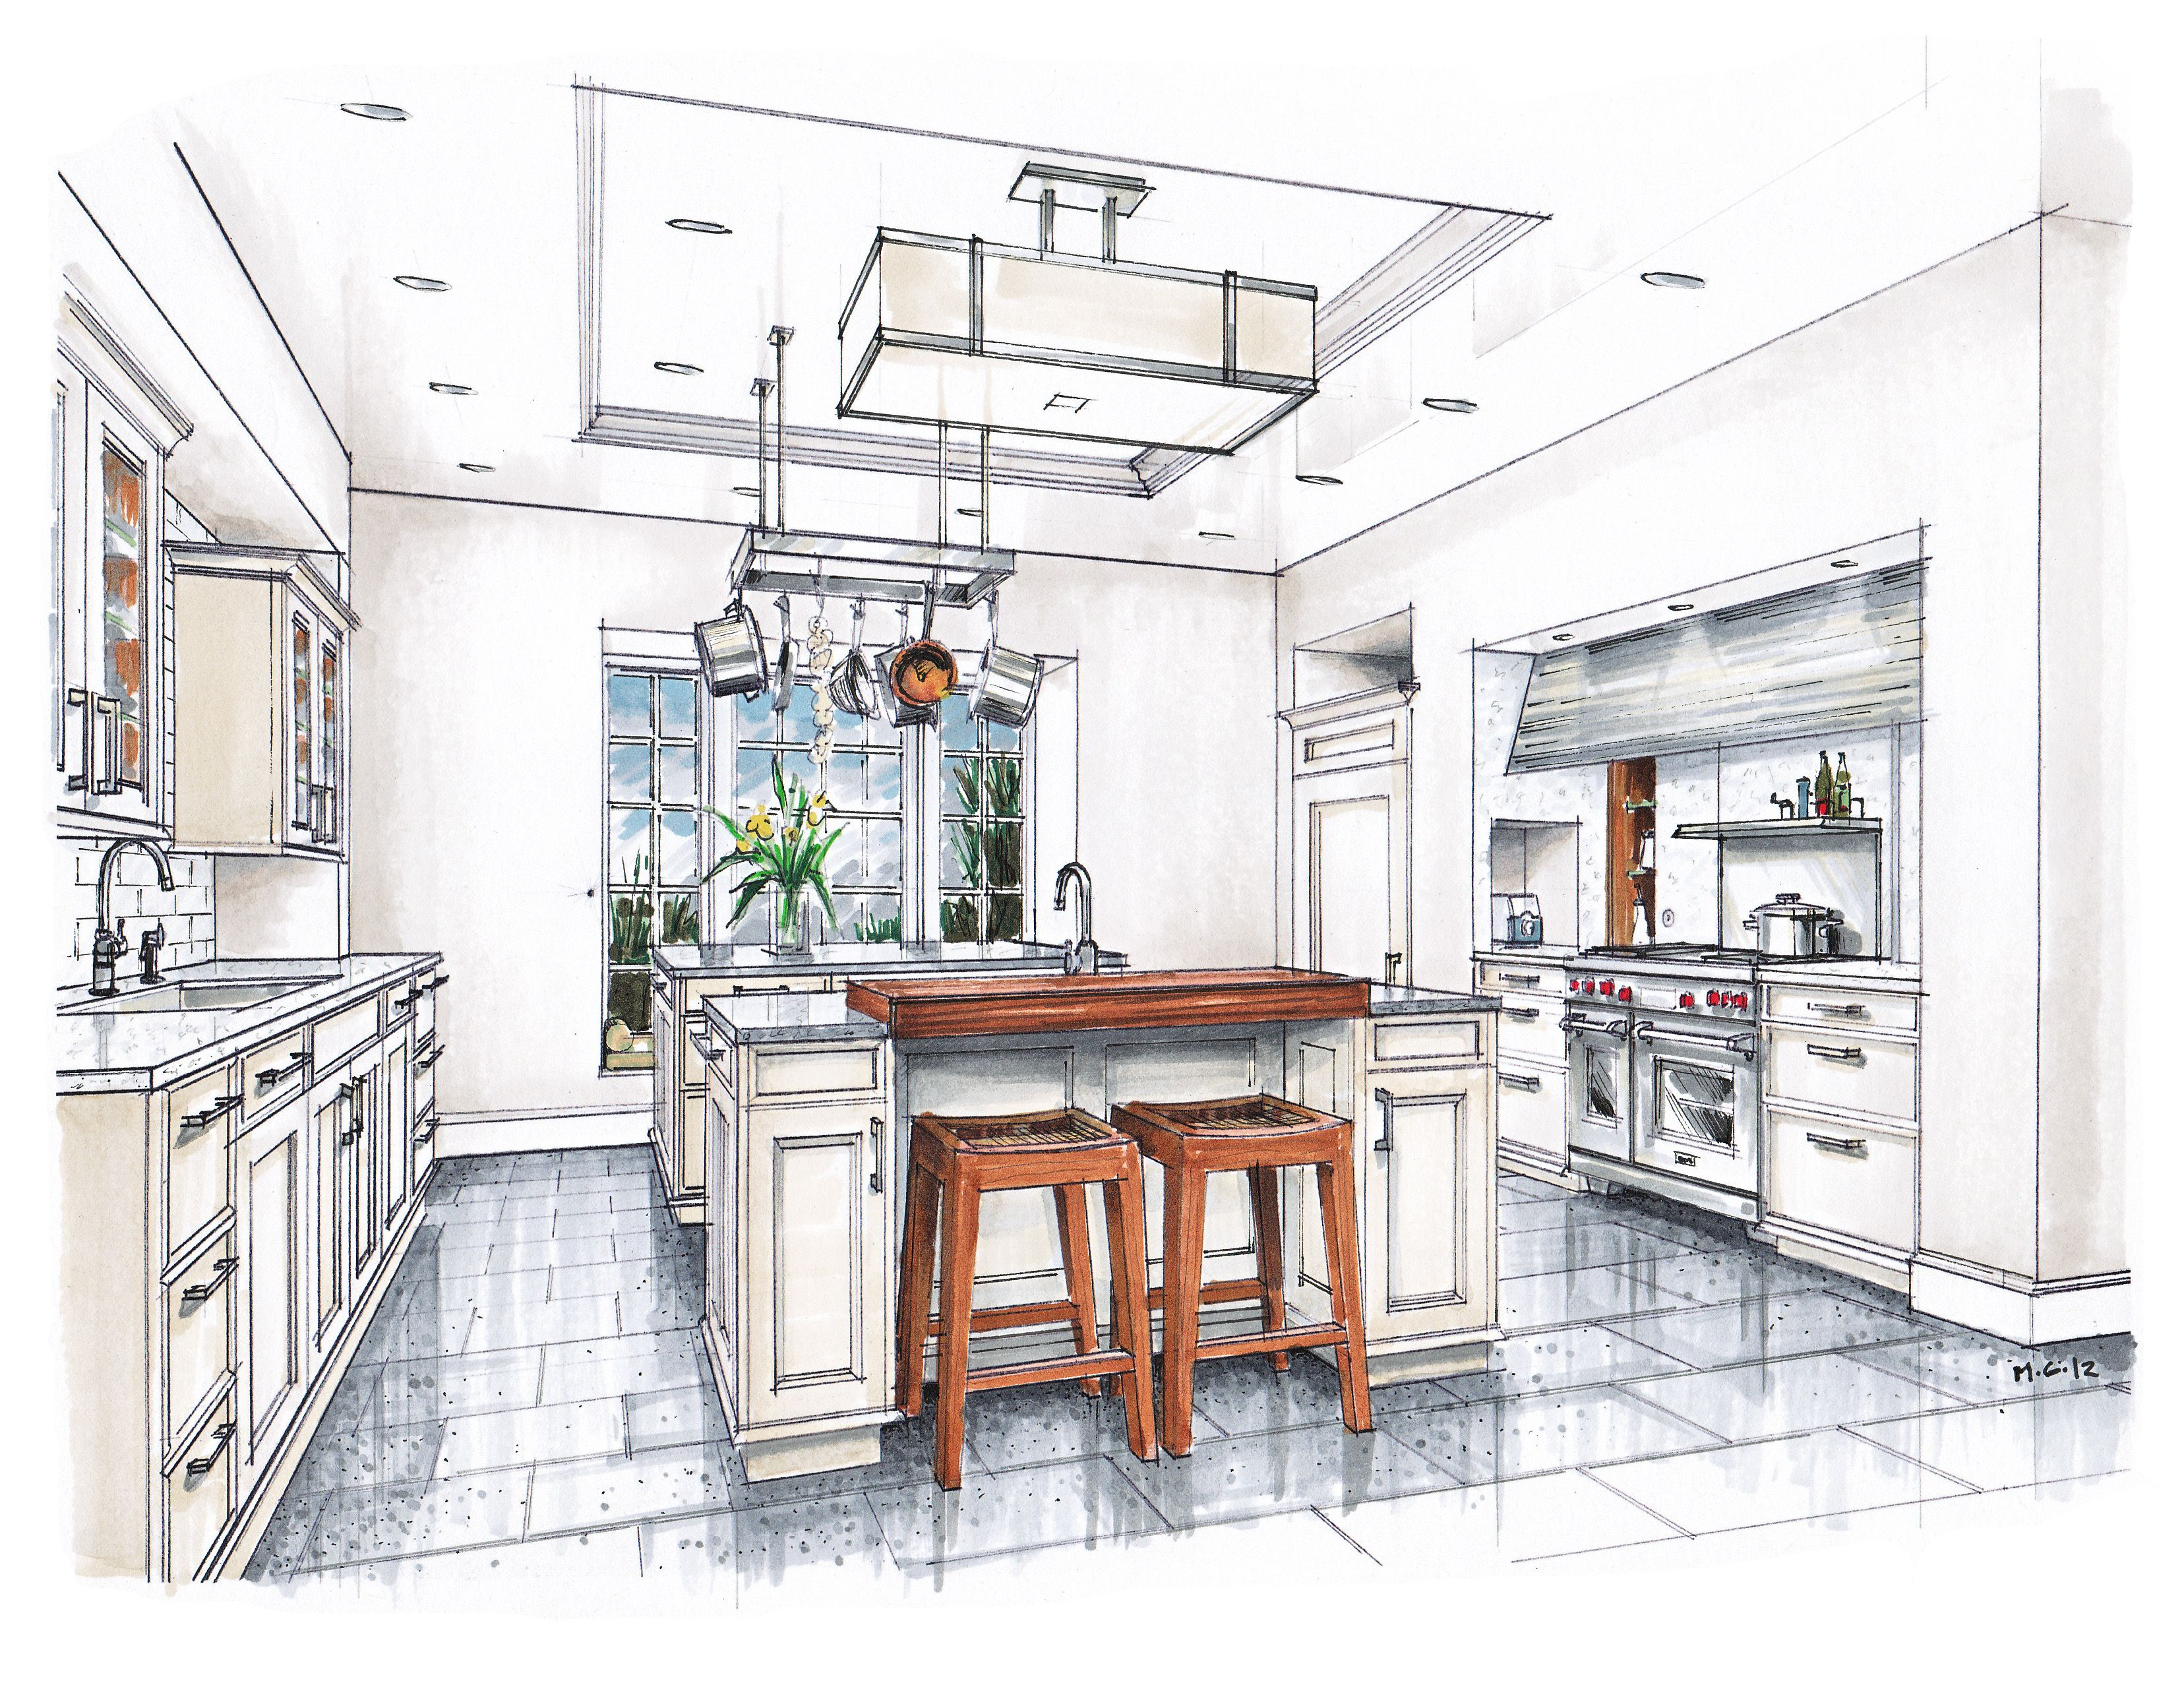 new beaux arts kitchen rendering sketches interior